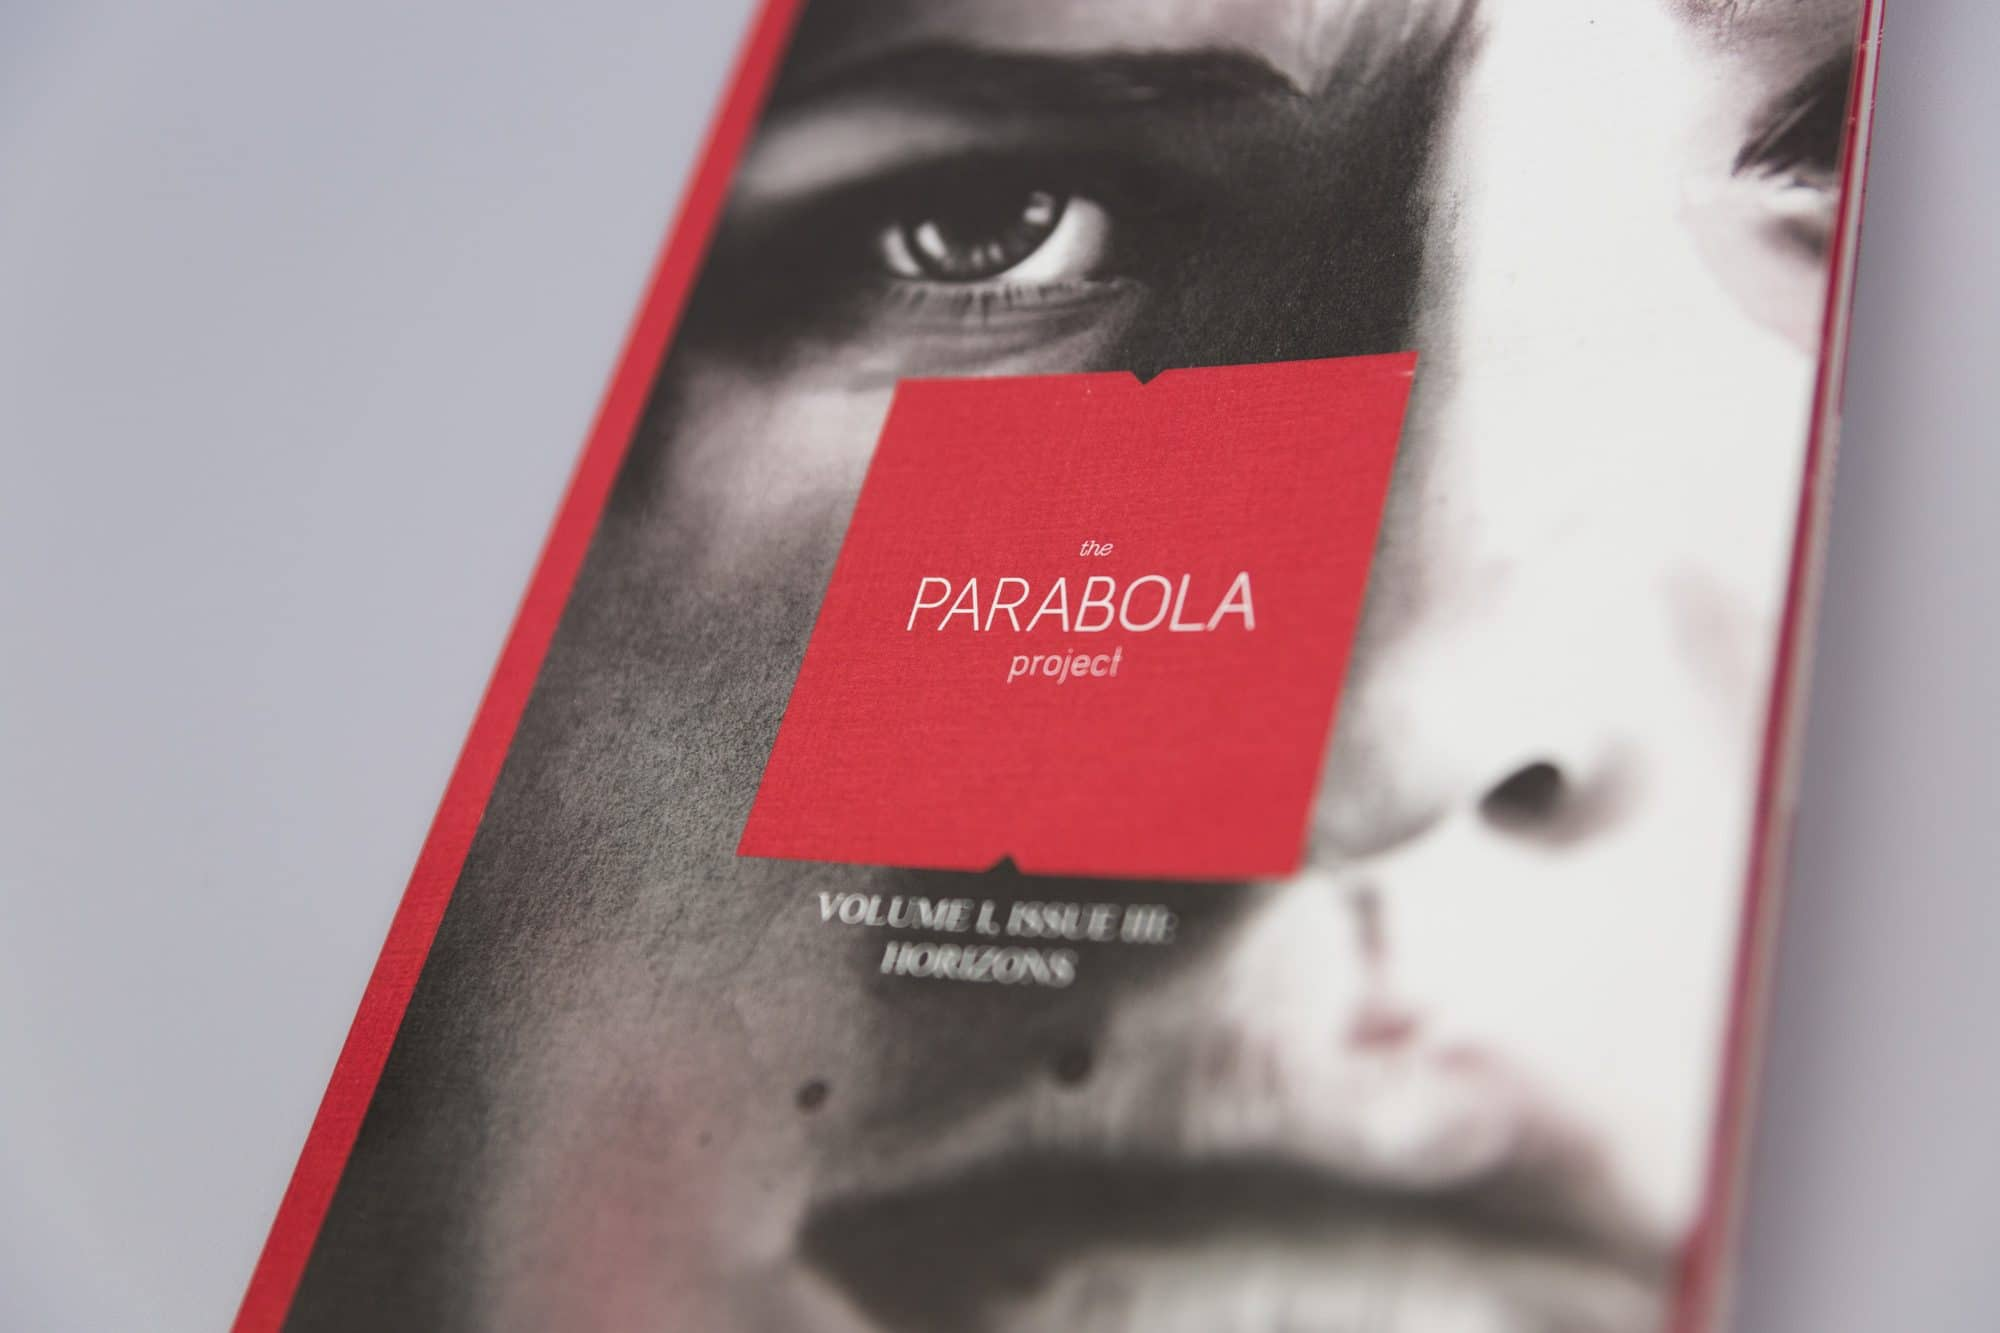 The Parabola Project